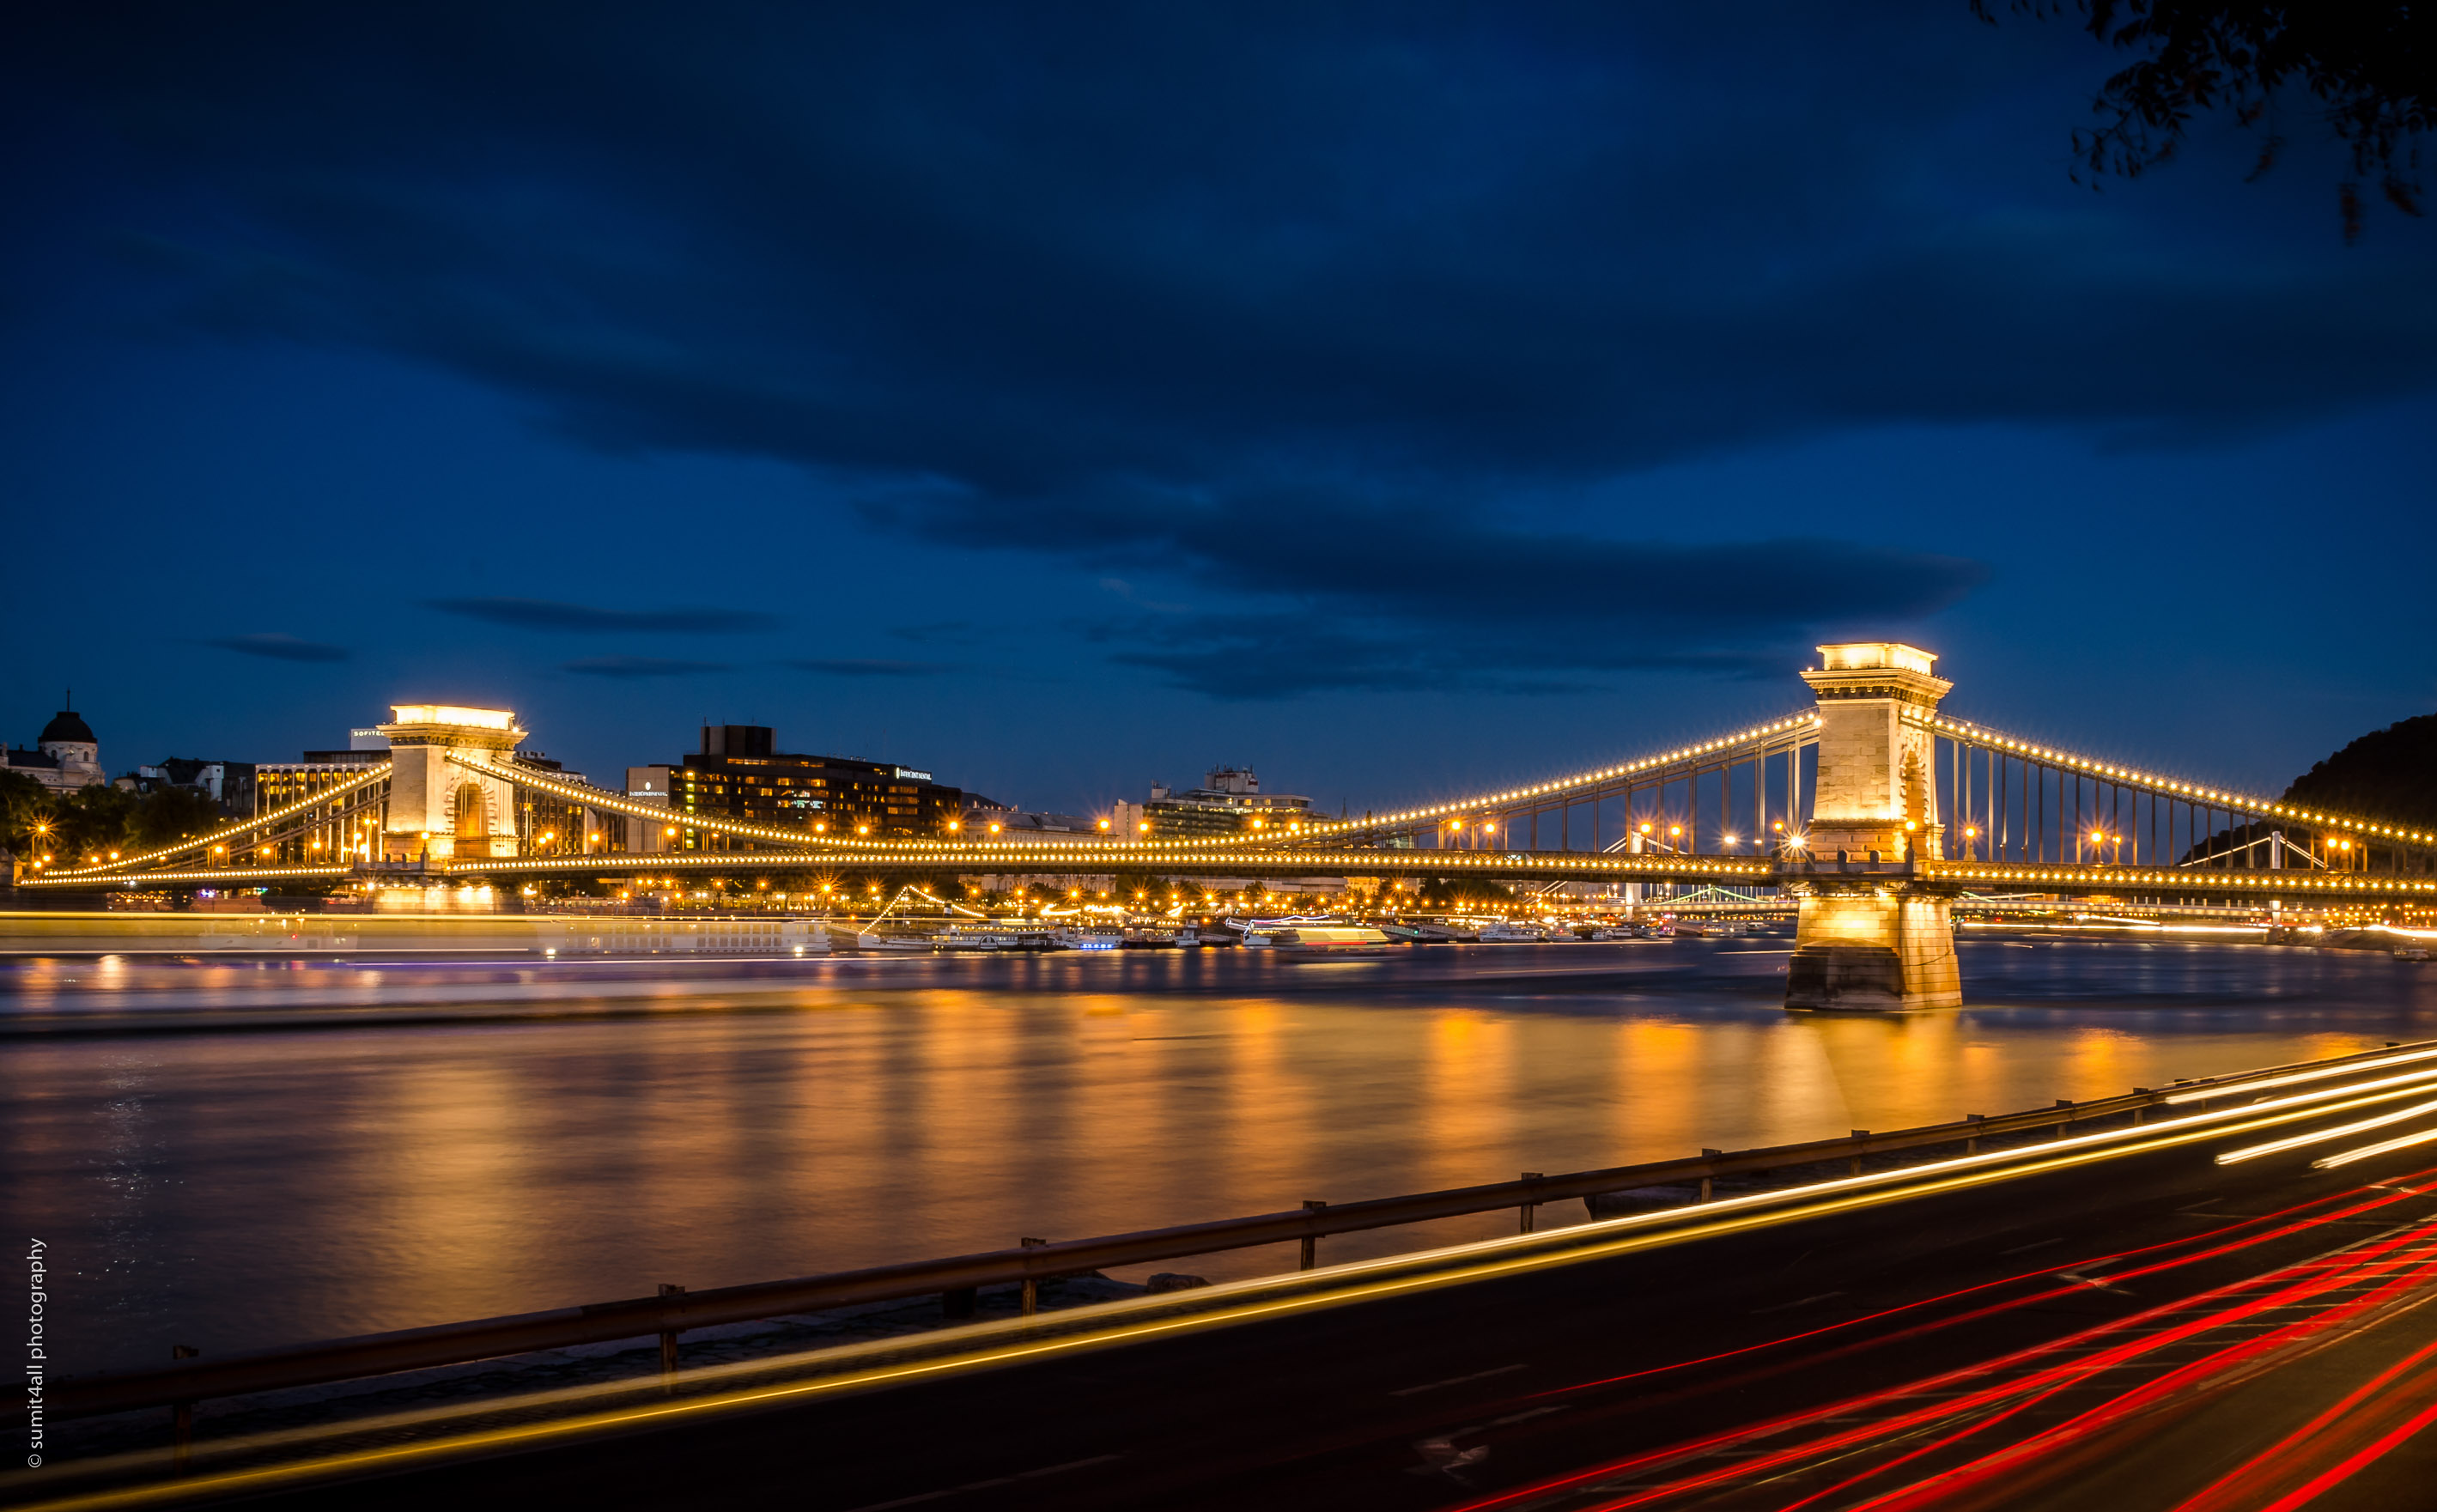 The Chain Bridge after sunset on the Danube river. The roads on both sides of the river are always jammed with traffic.